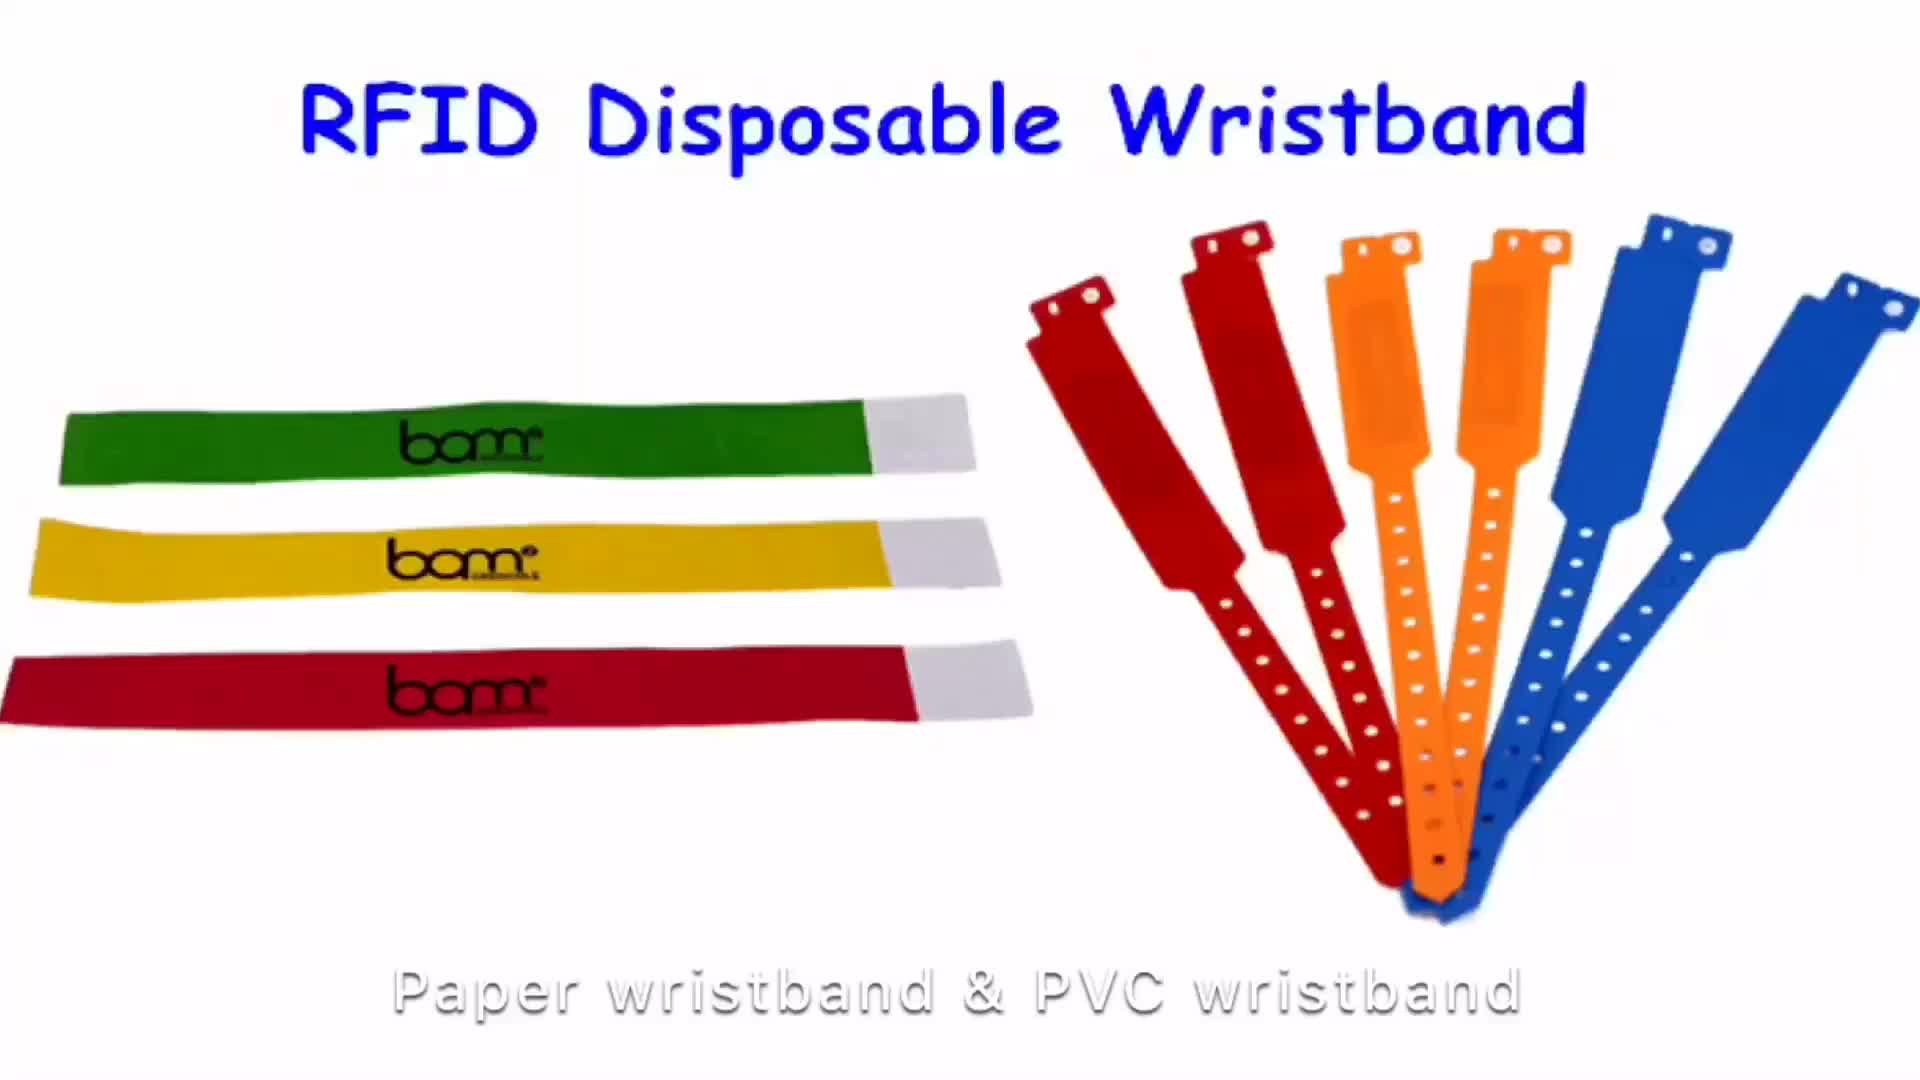 13.56MHz RFID NFC Chip PVC Wristband Printed Vinyl Wristband for Events